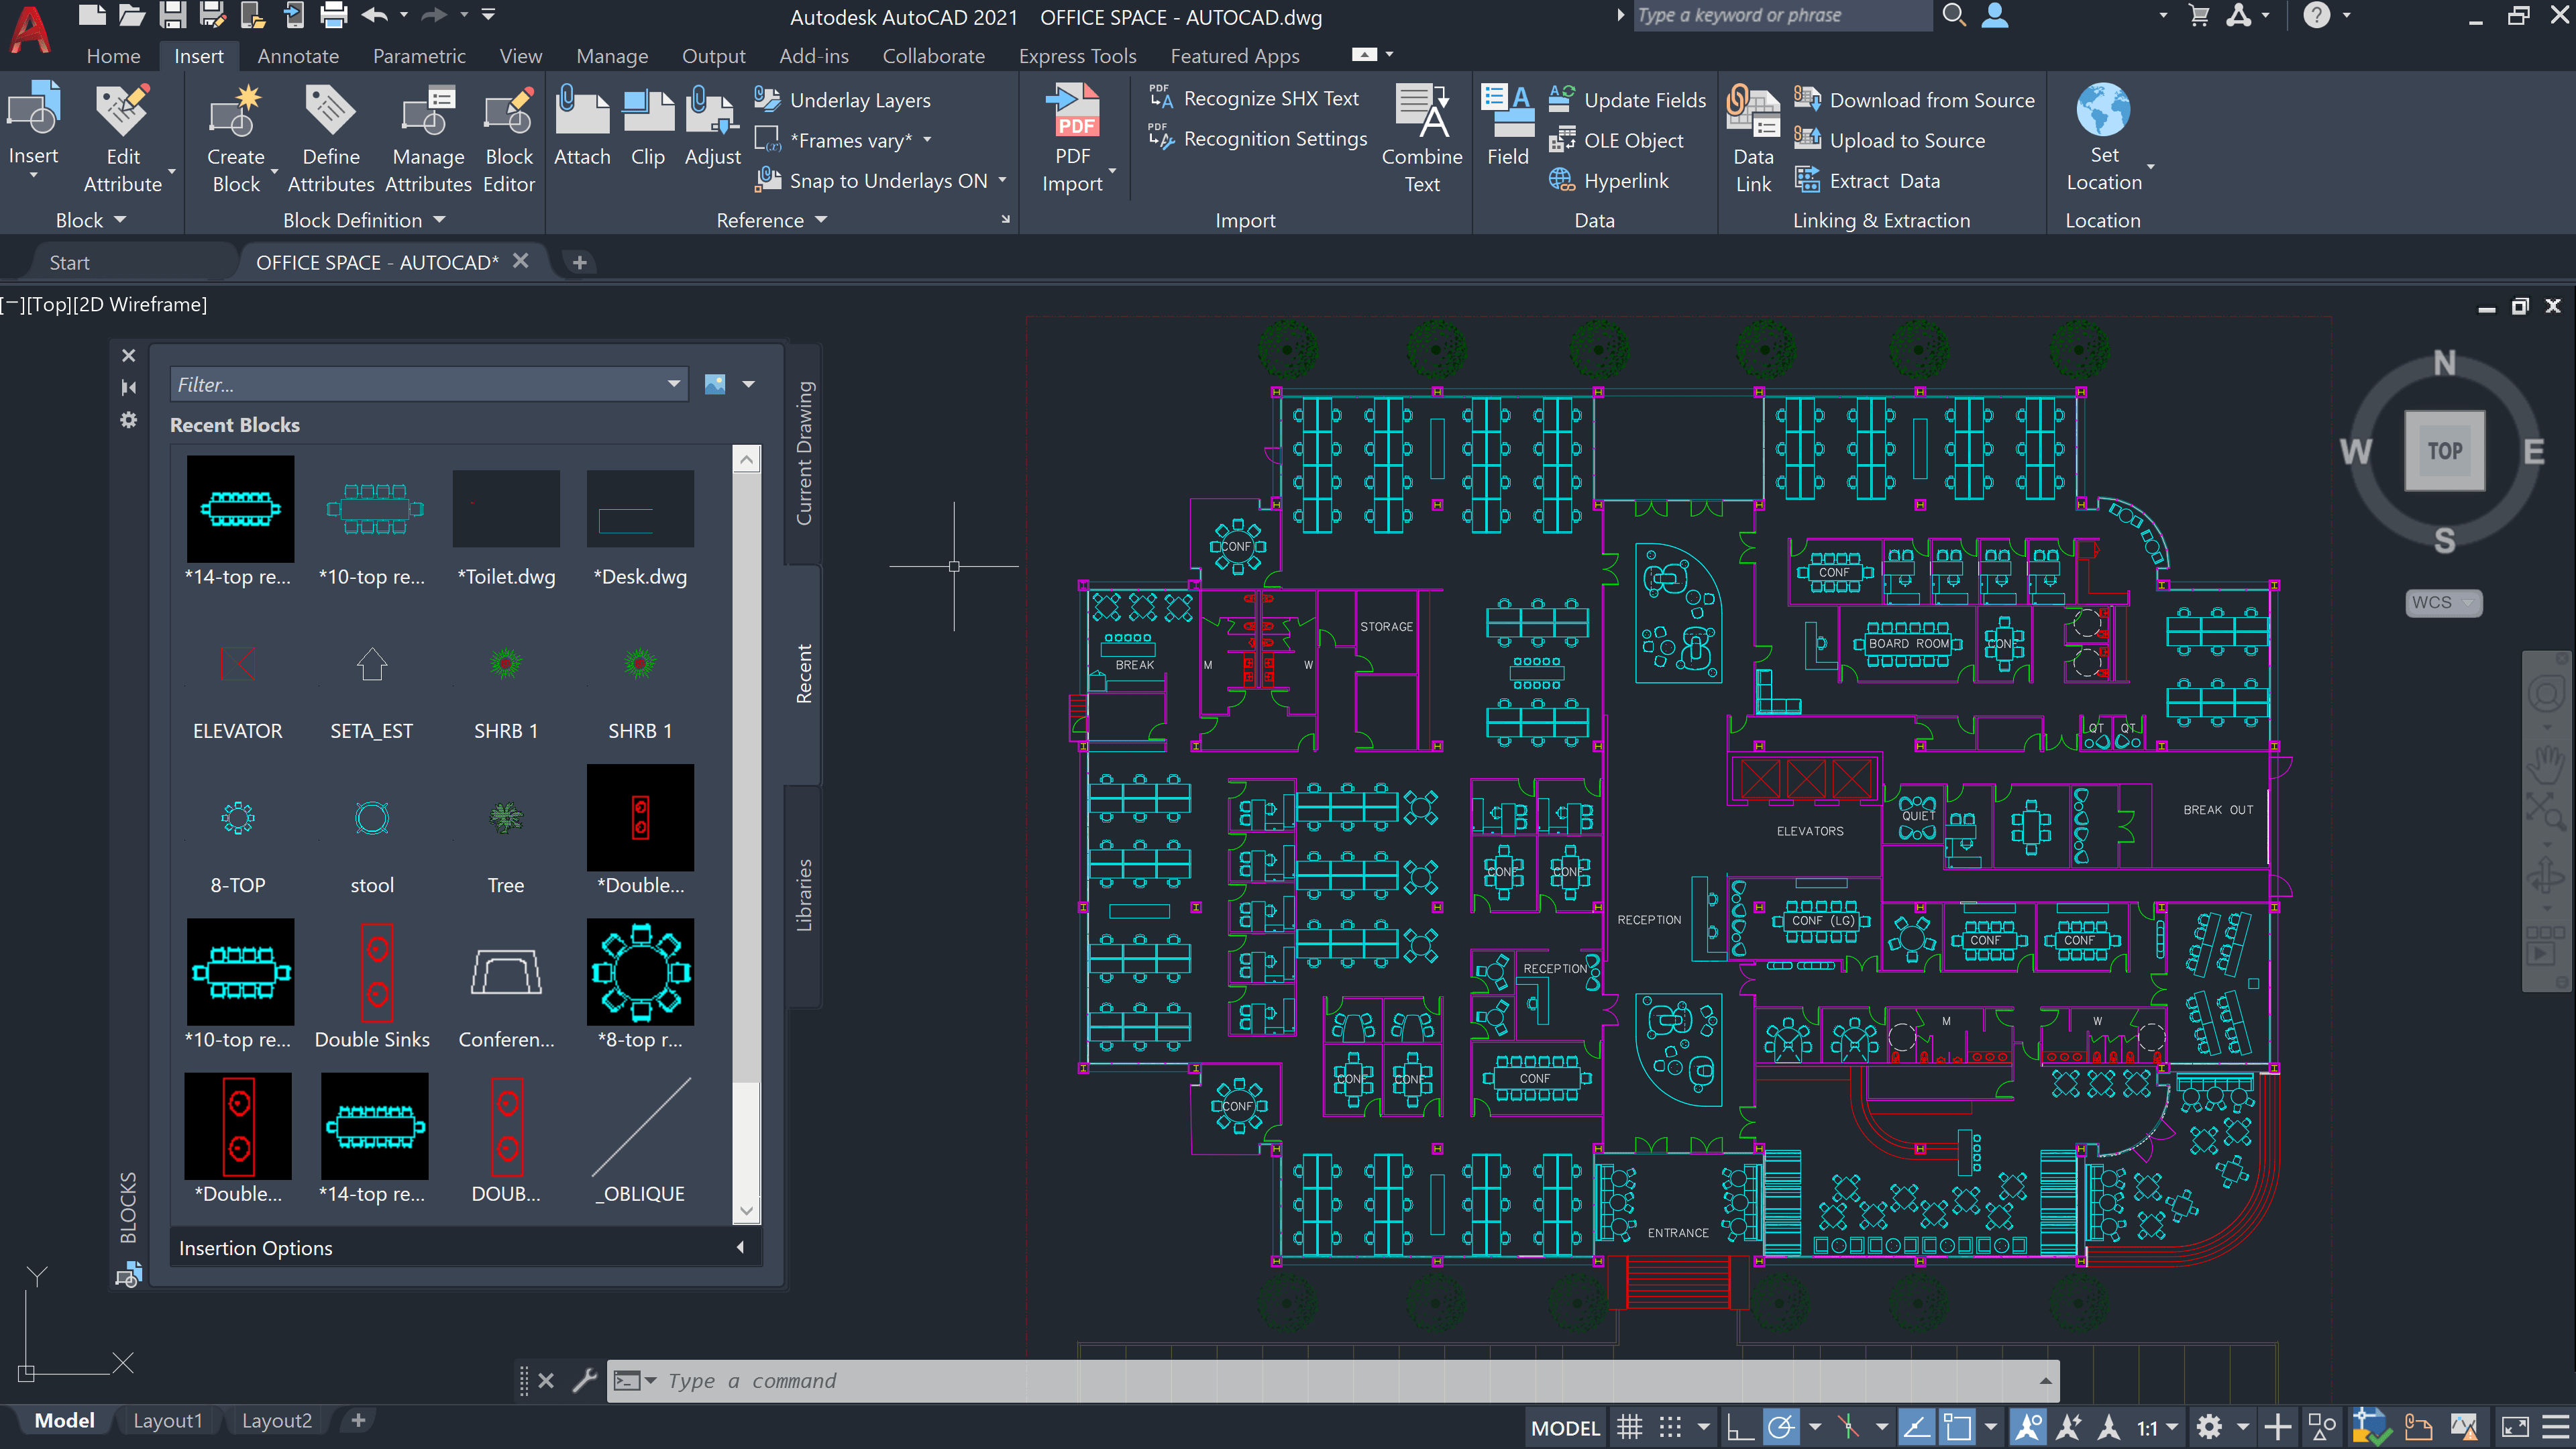 Autodesk AutoCAD 2021 Win X64 Torrent Download - DOWNLOAD ARMY